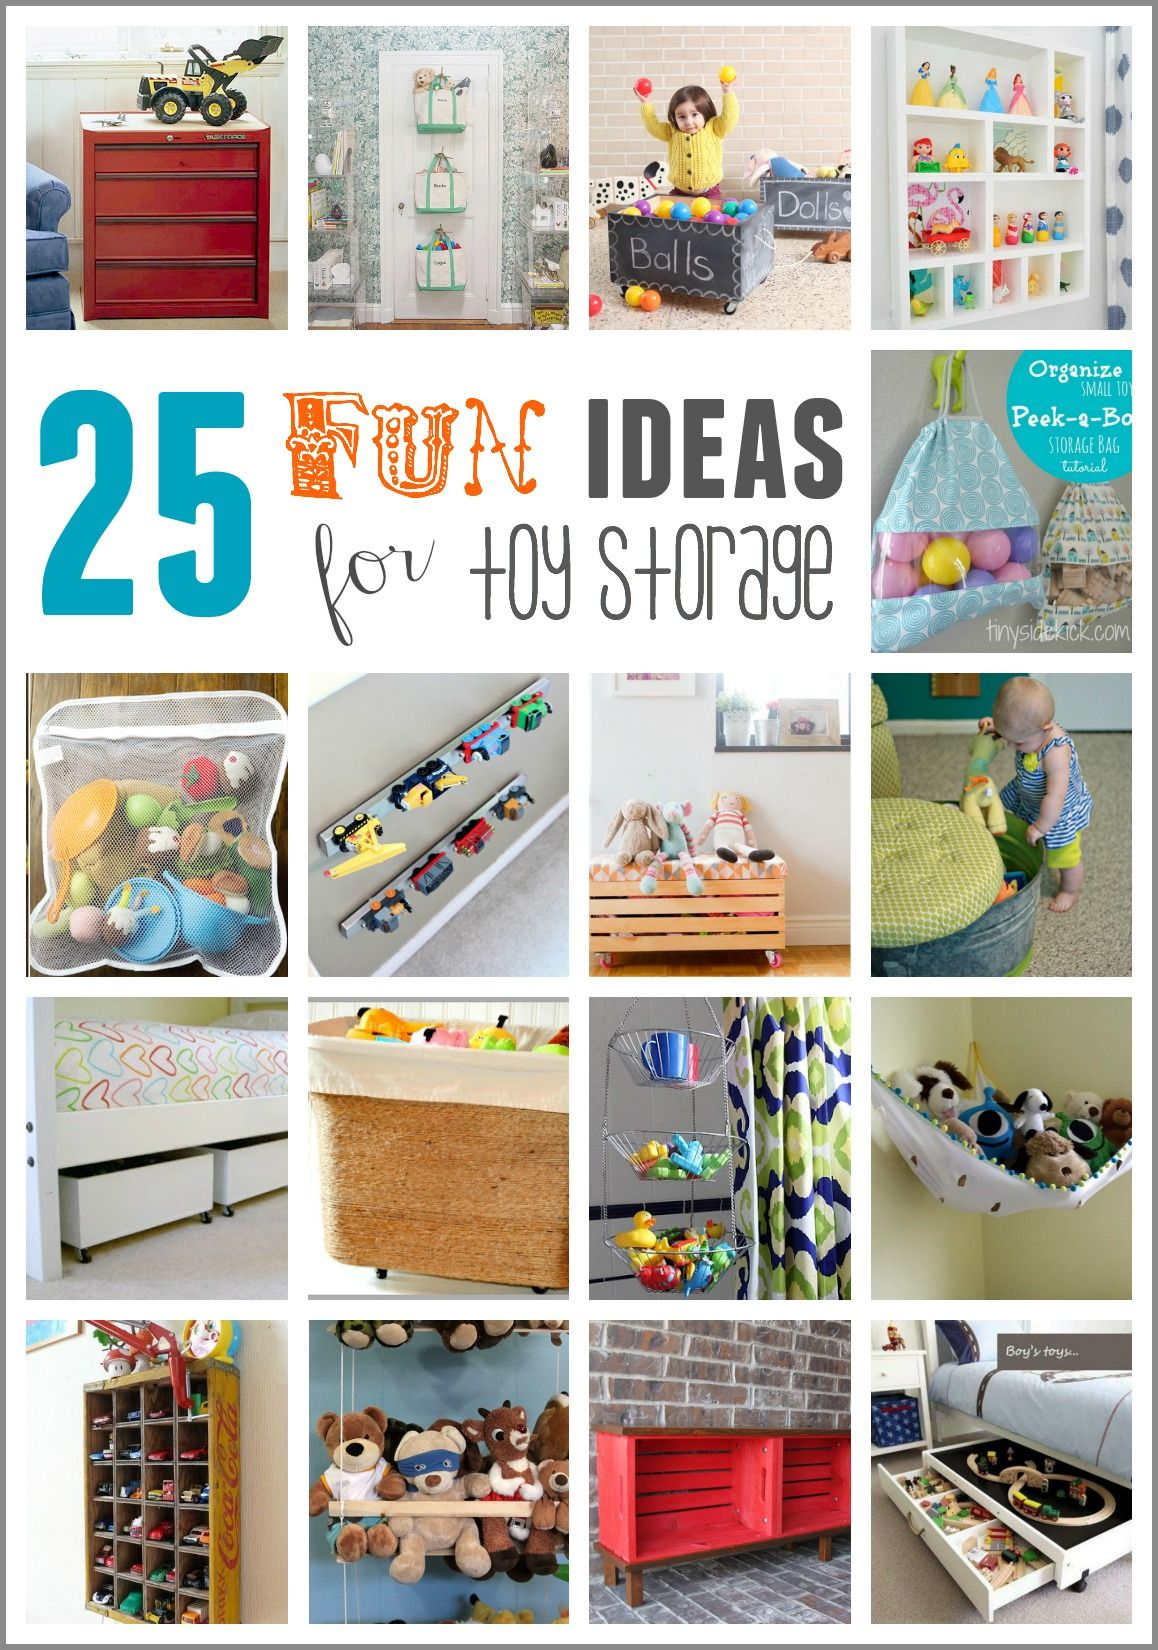 toy storage ideas for living room. Toy Storage Ideas Living Room For Small Spaces. Learn How To Organize Toys In A Space, Furniture, And DIY Ideas.